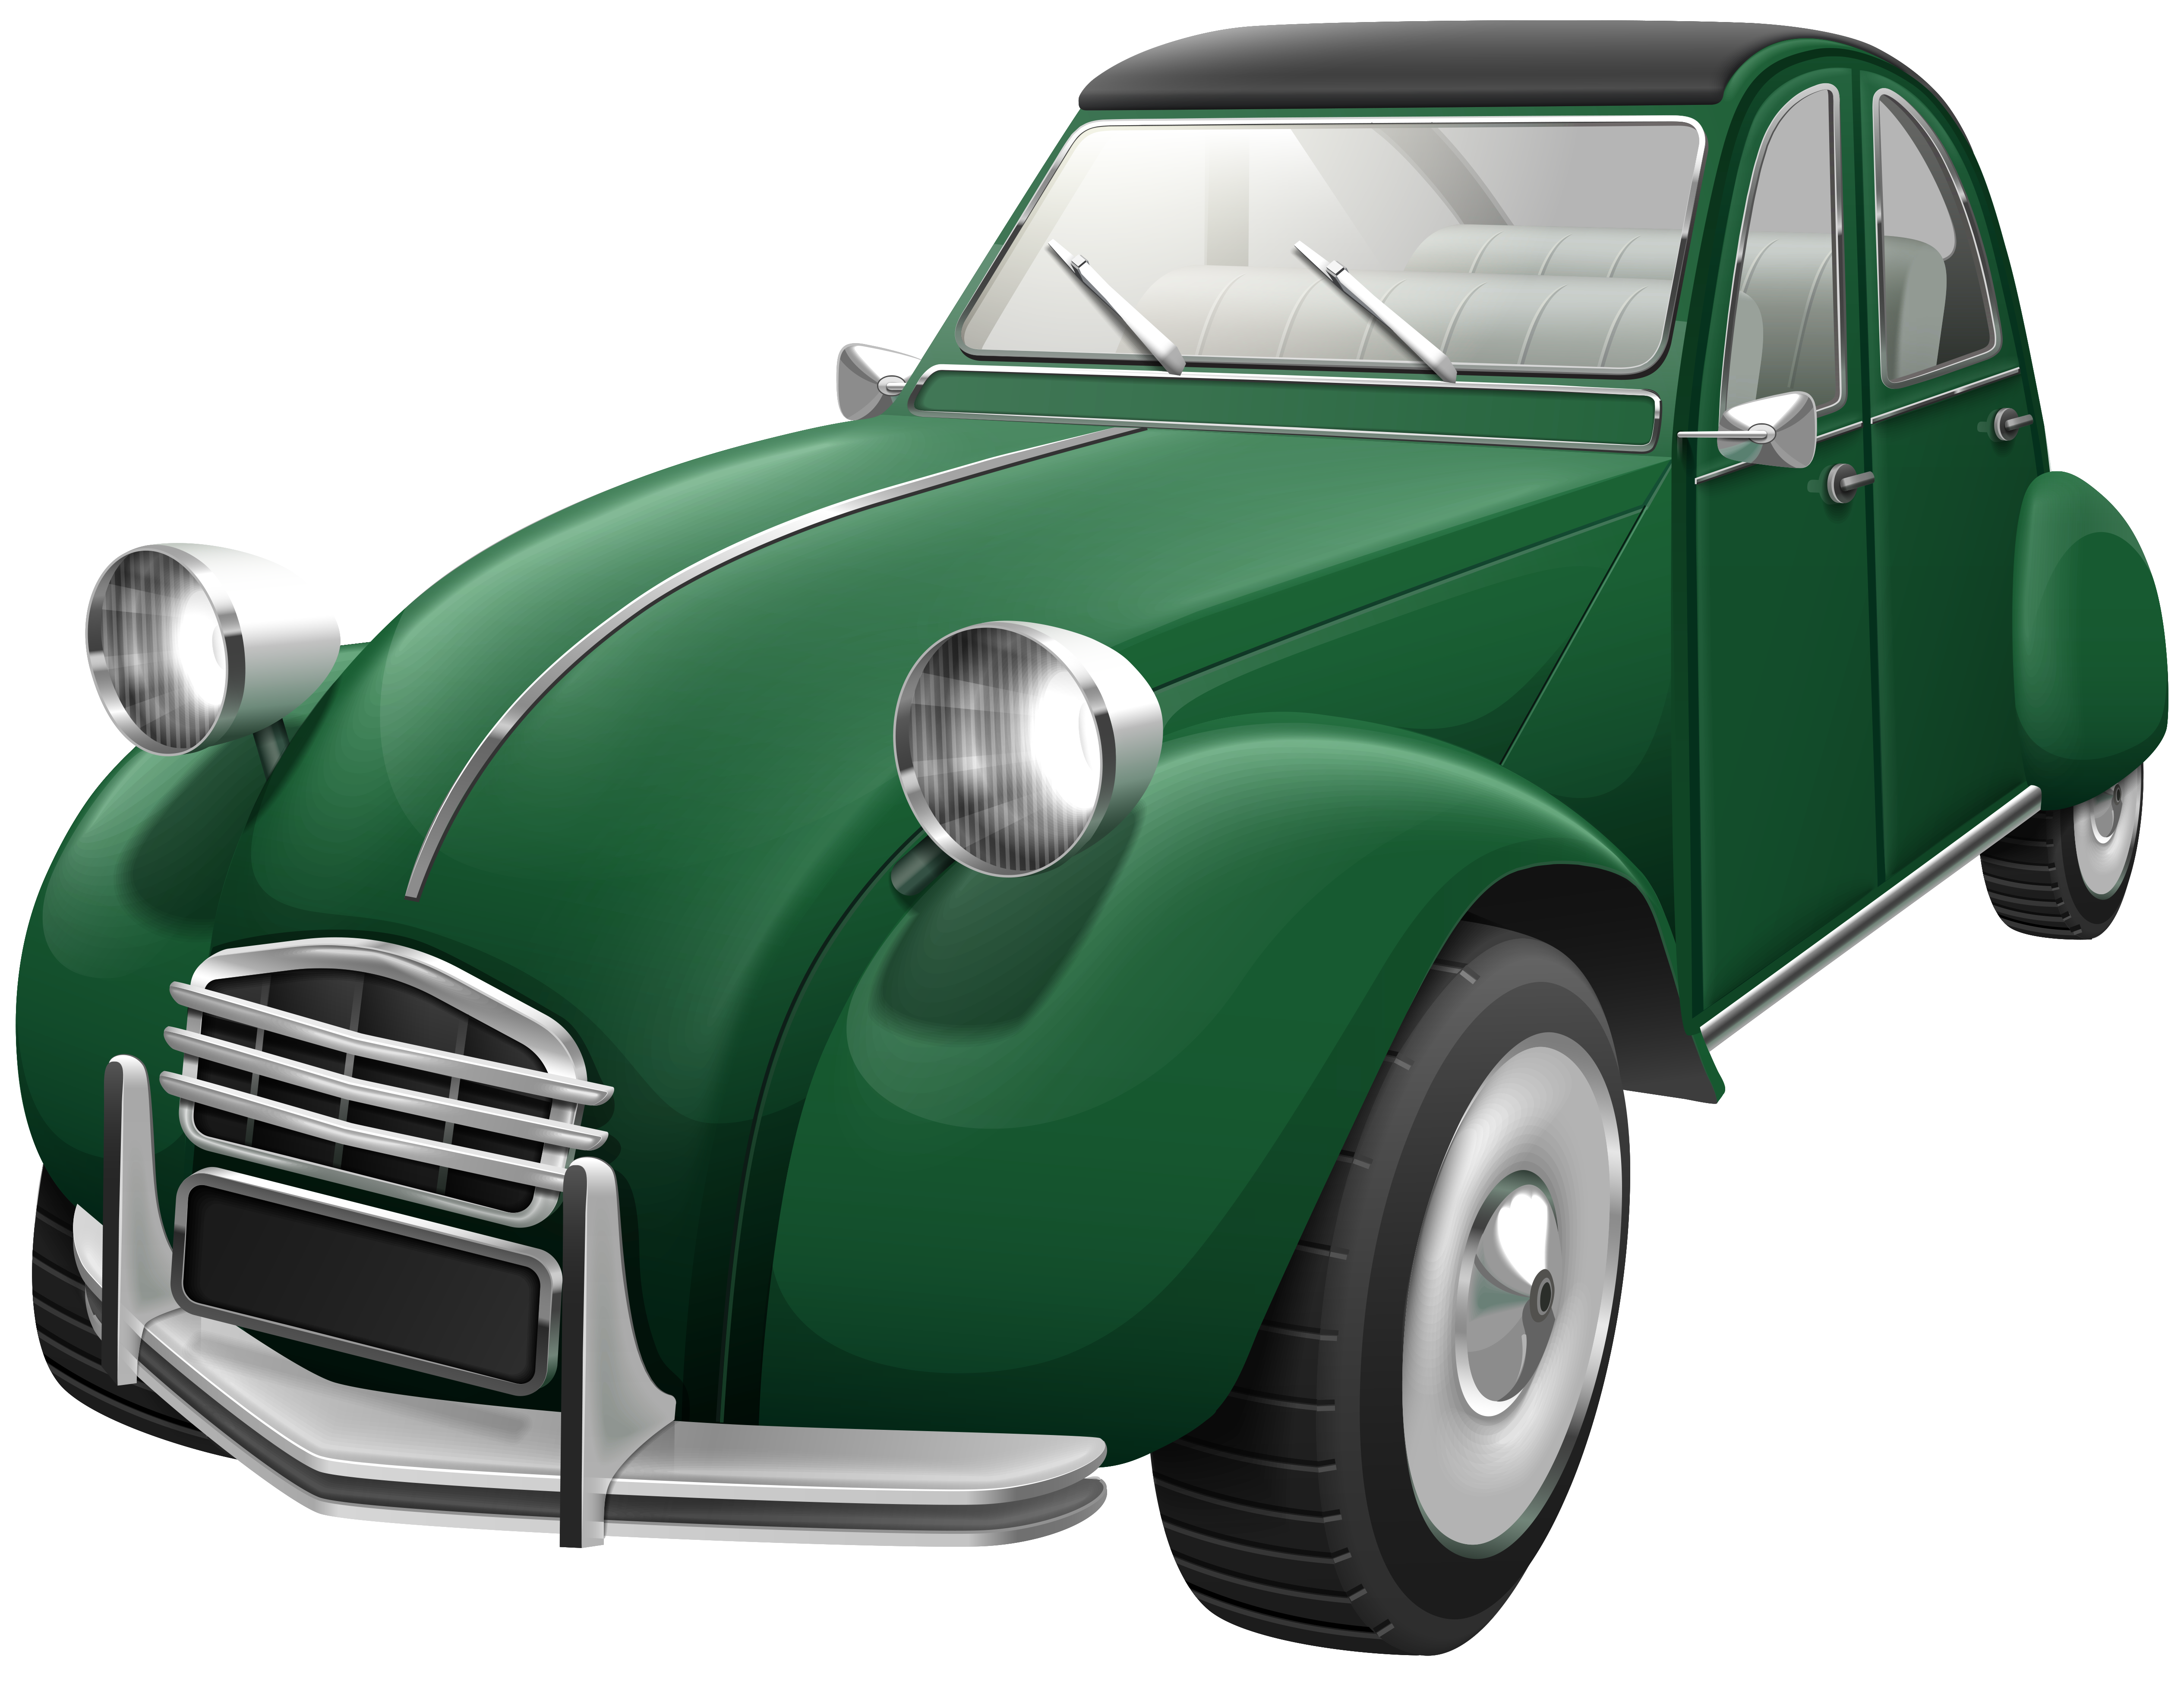 City car clipart banner freeuse stock Green Retro Car PNG Clip Art - Best WEB Clipart banner freeuse stock